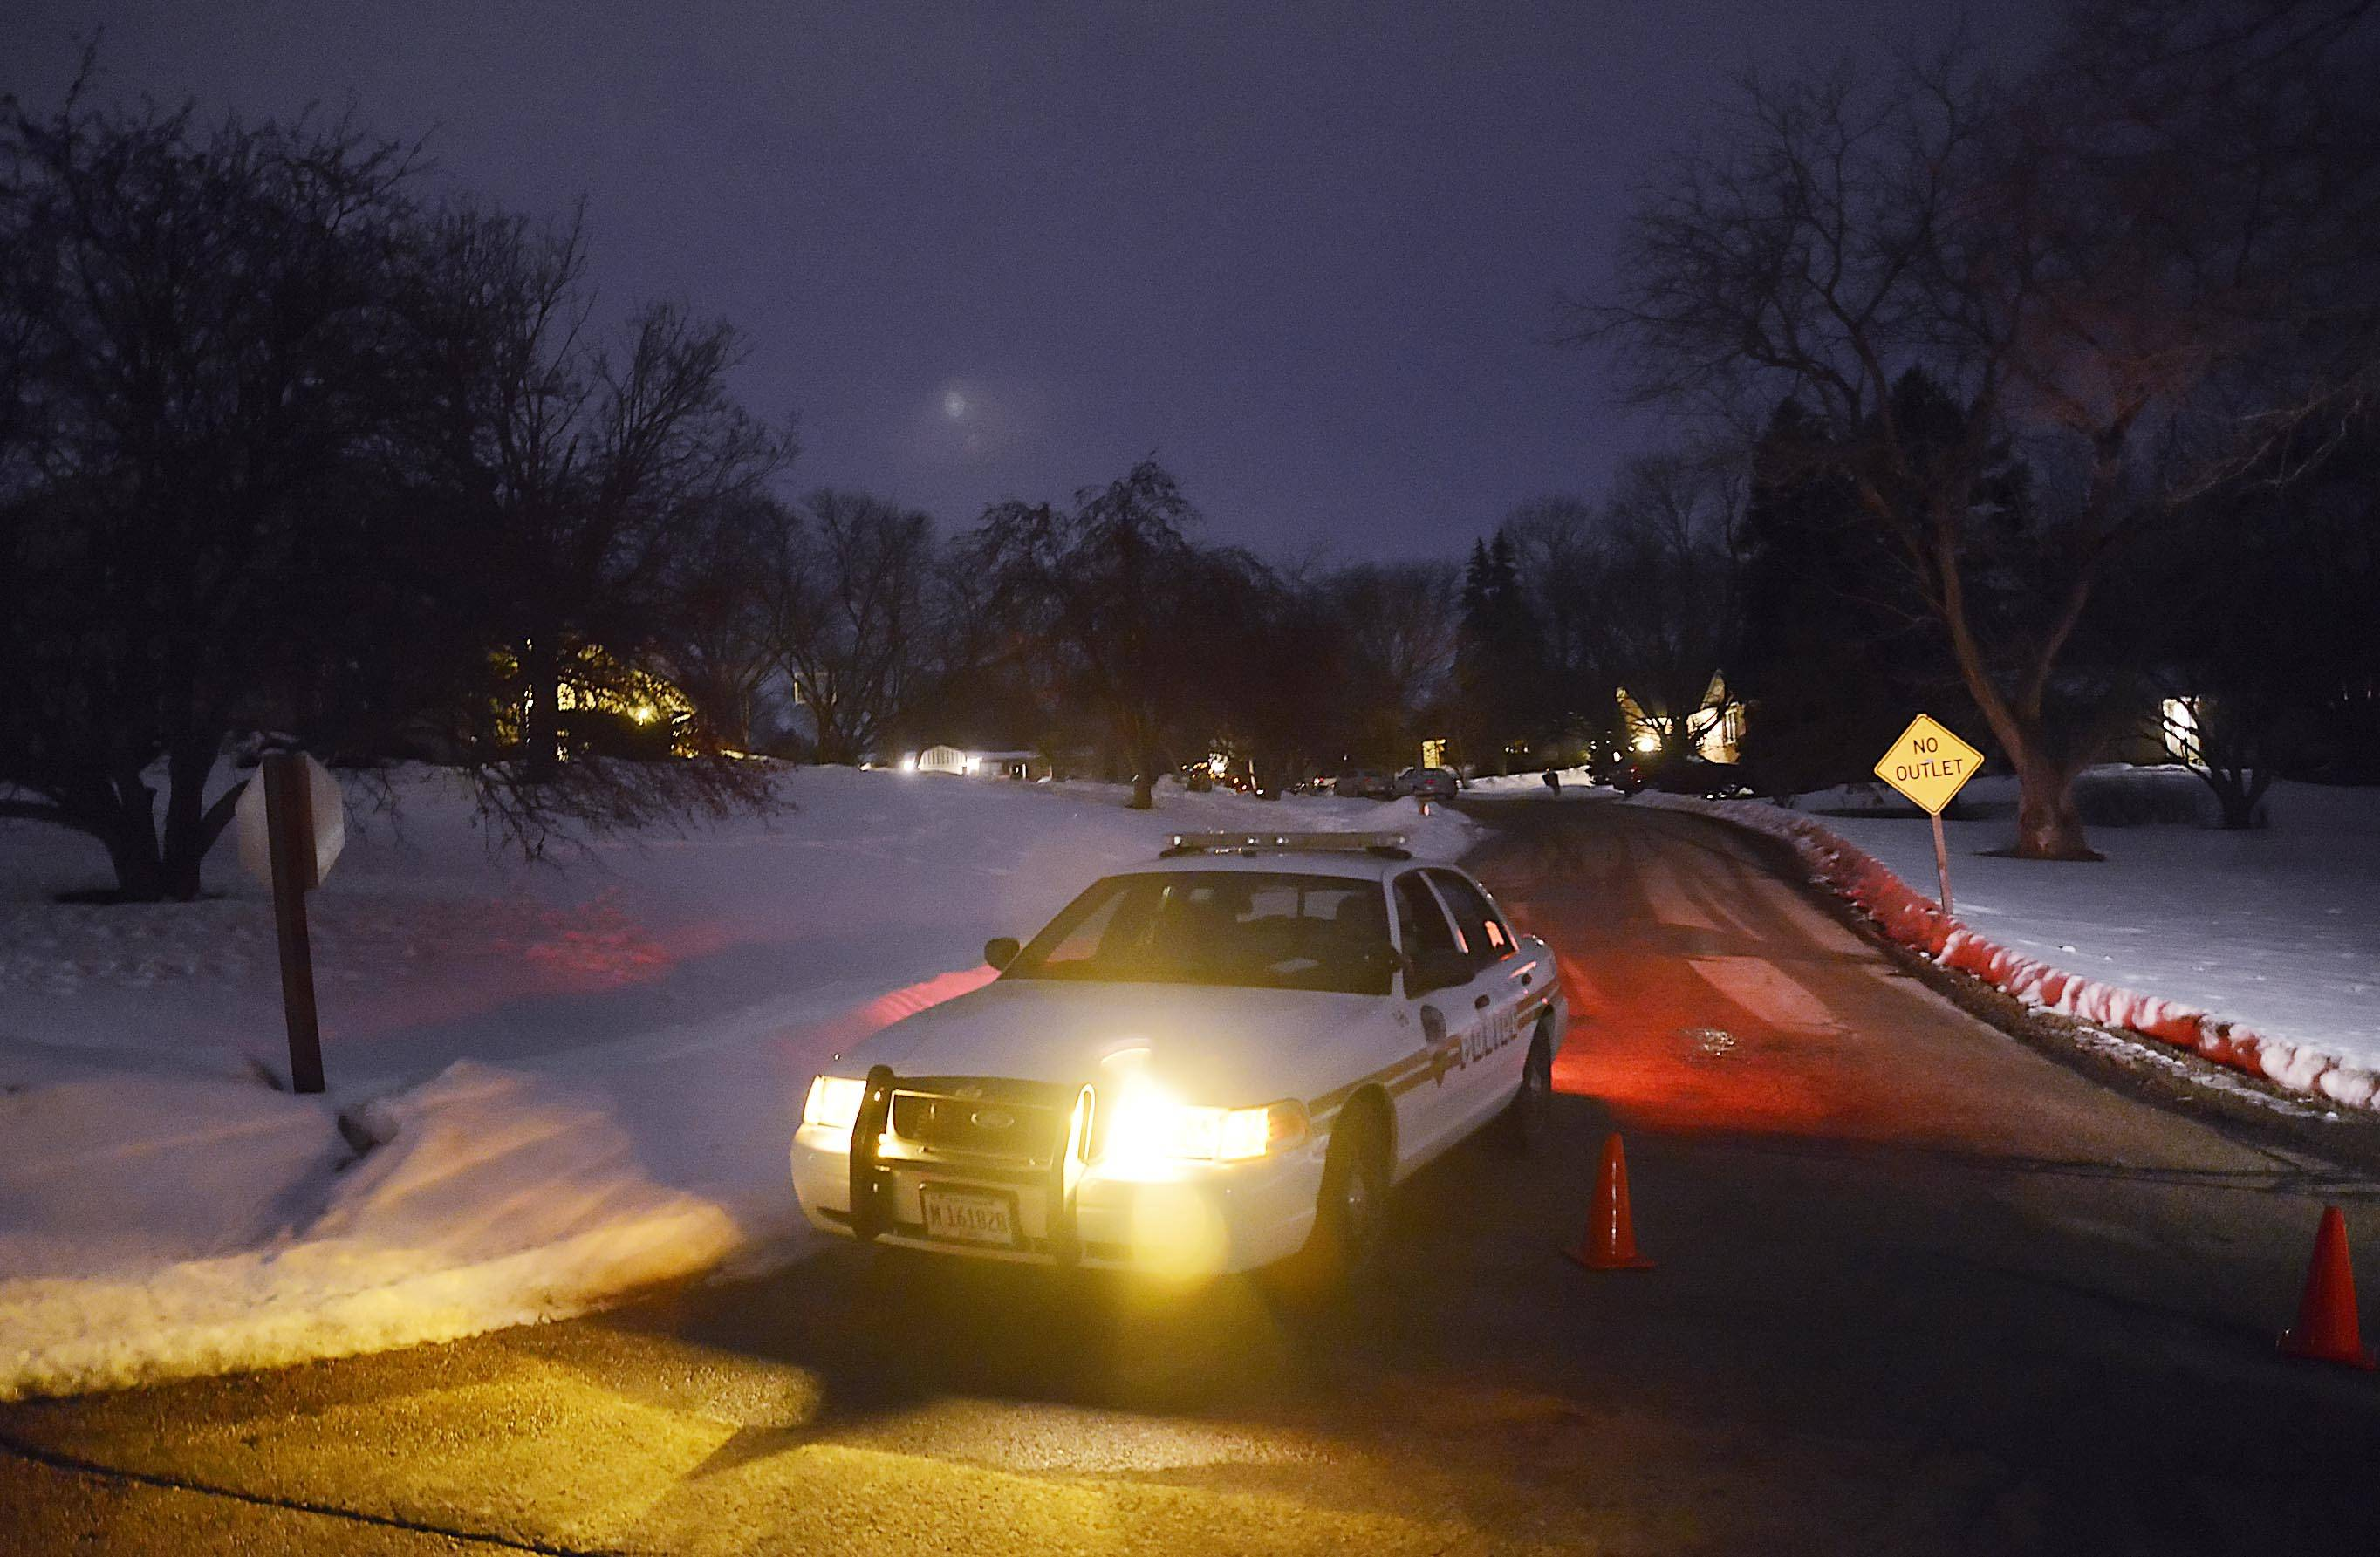 Sleepy Hollow police block the intersection of Hemlock Drive and Maple Lane as they investigate a fatal police shooting at the end of the Maple Lane cul-de-sac Sunday evening.